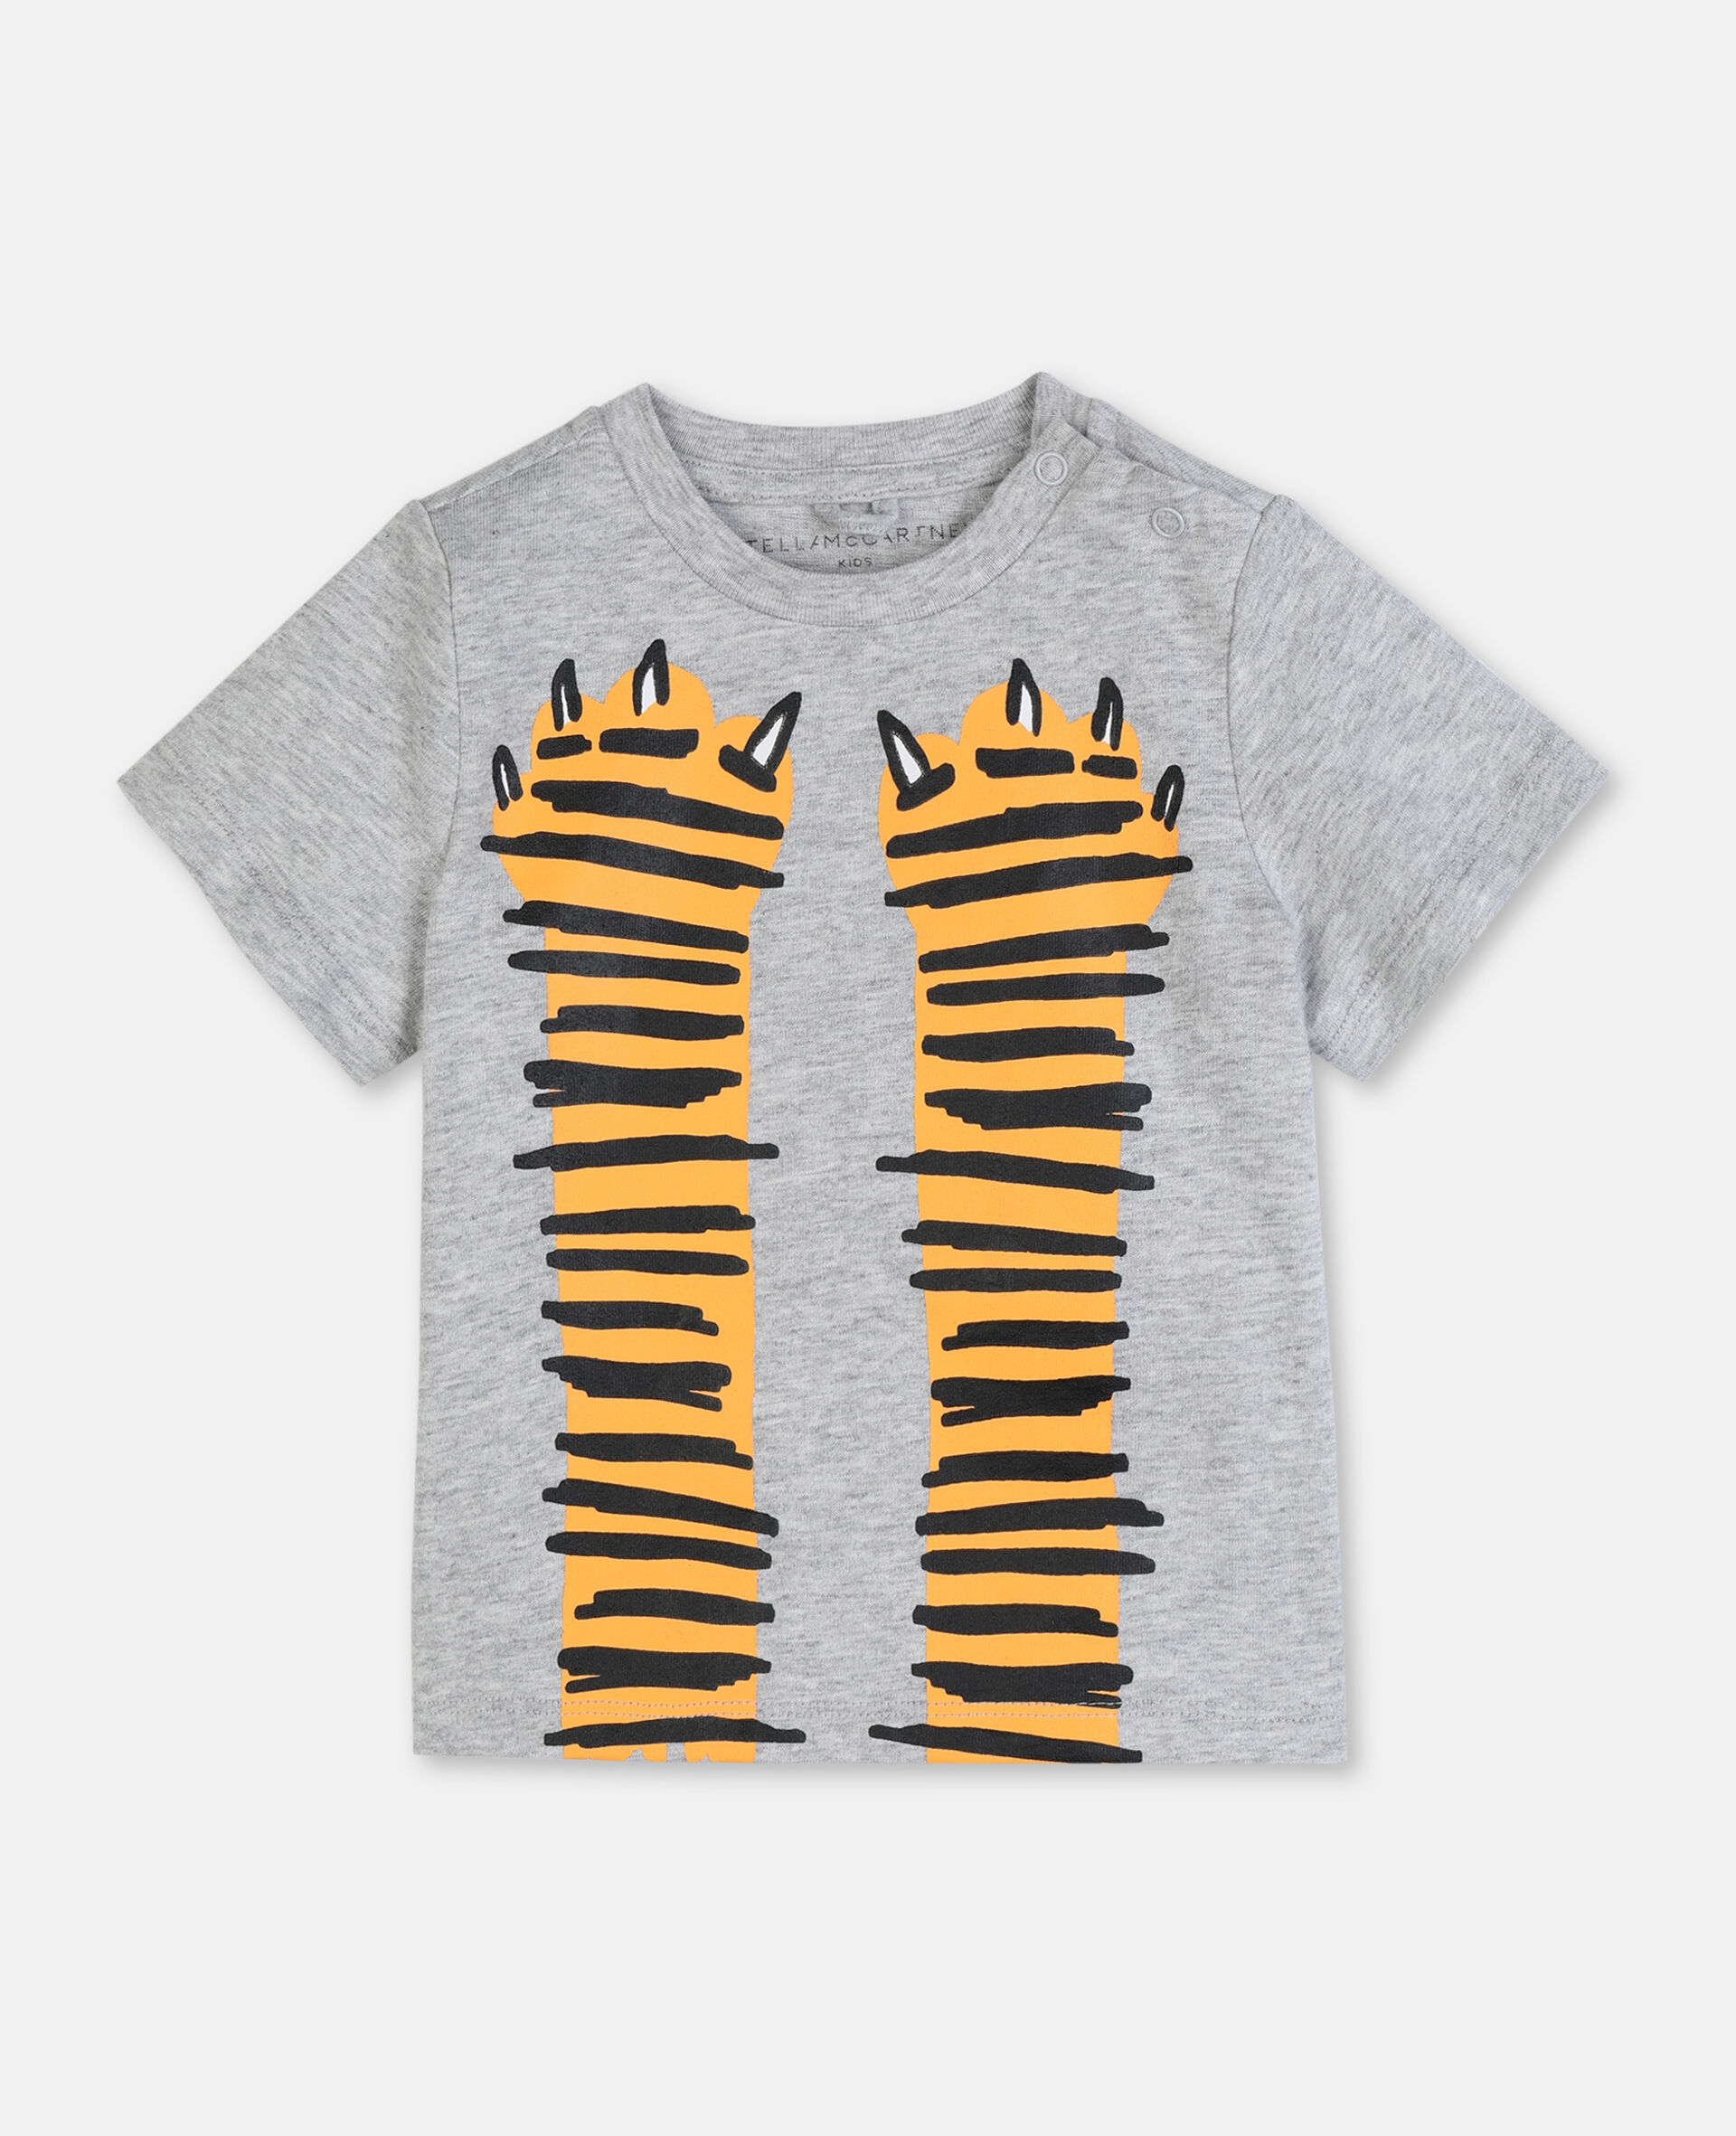 Paws Up Cotton T-shirt -Grey-large image number 0